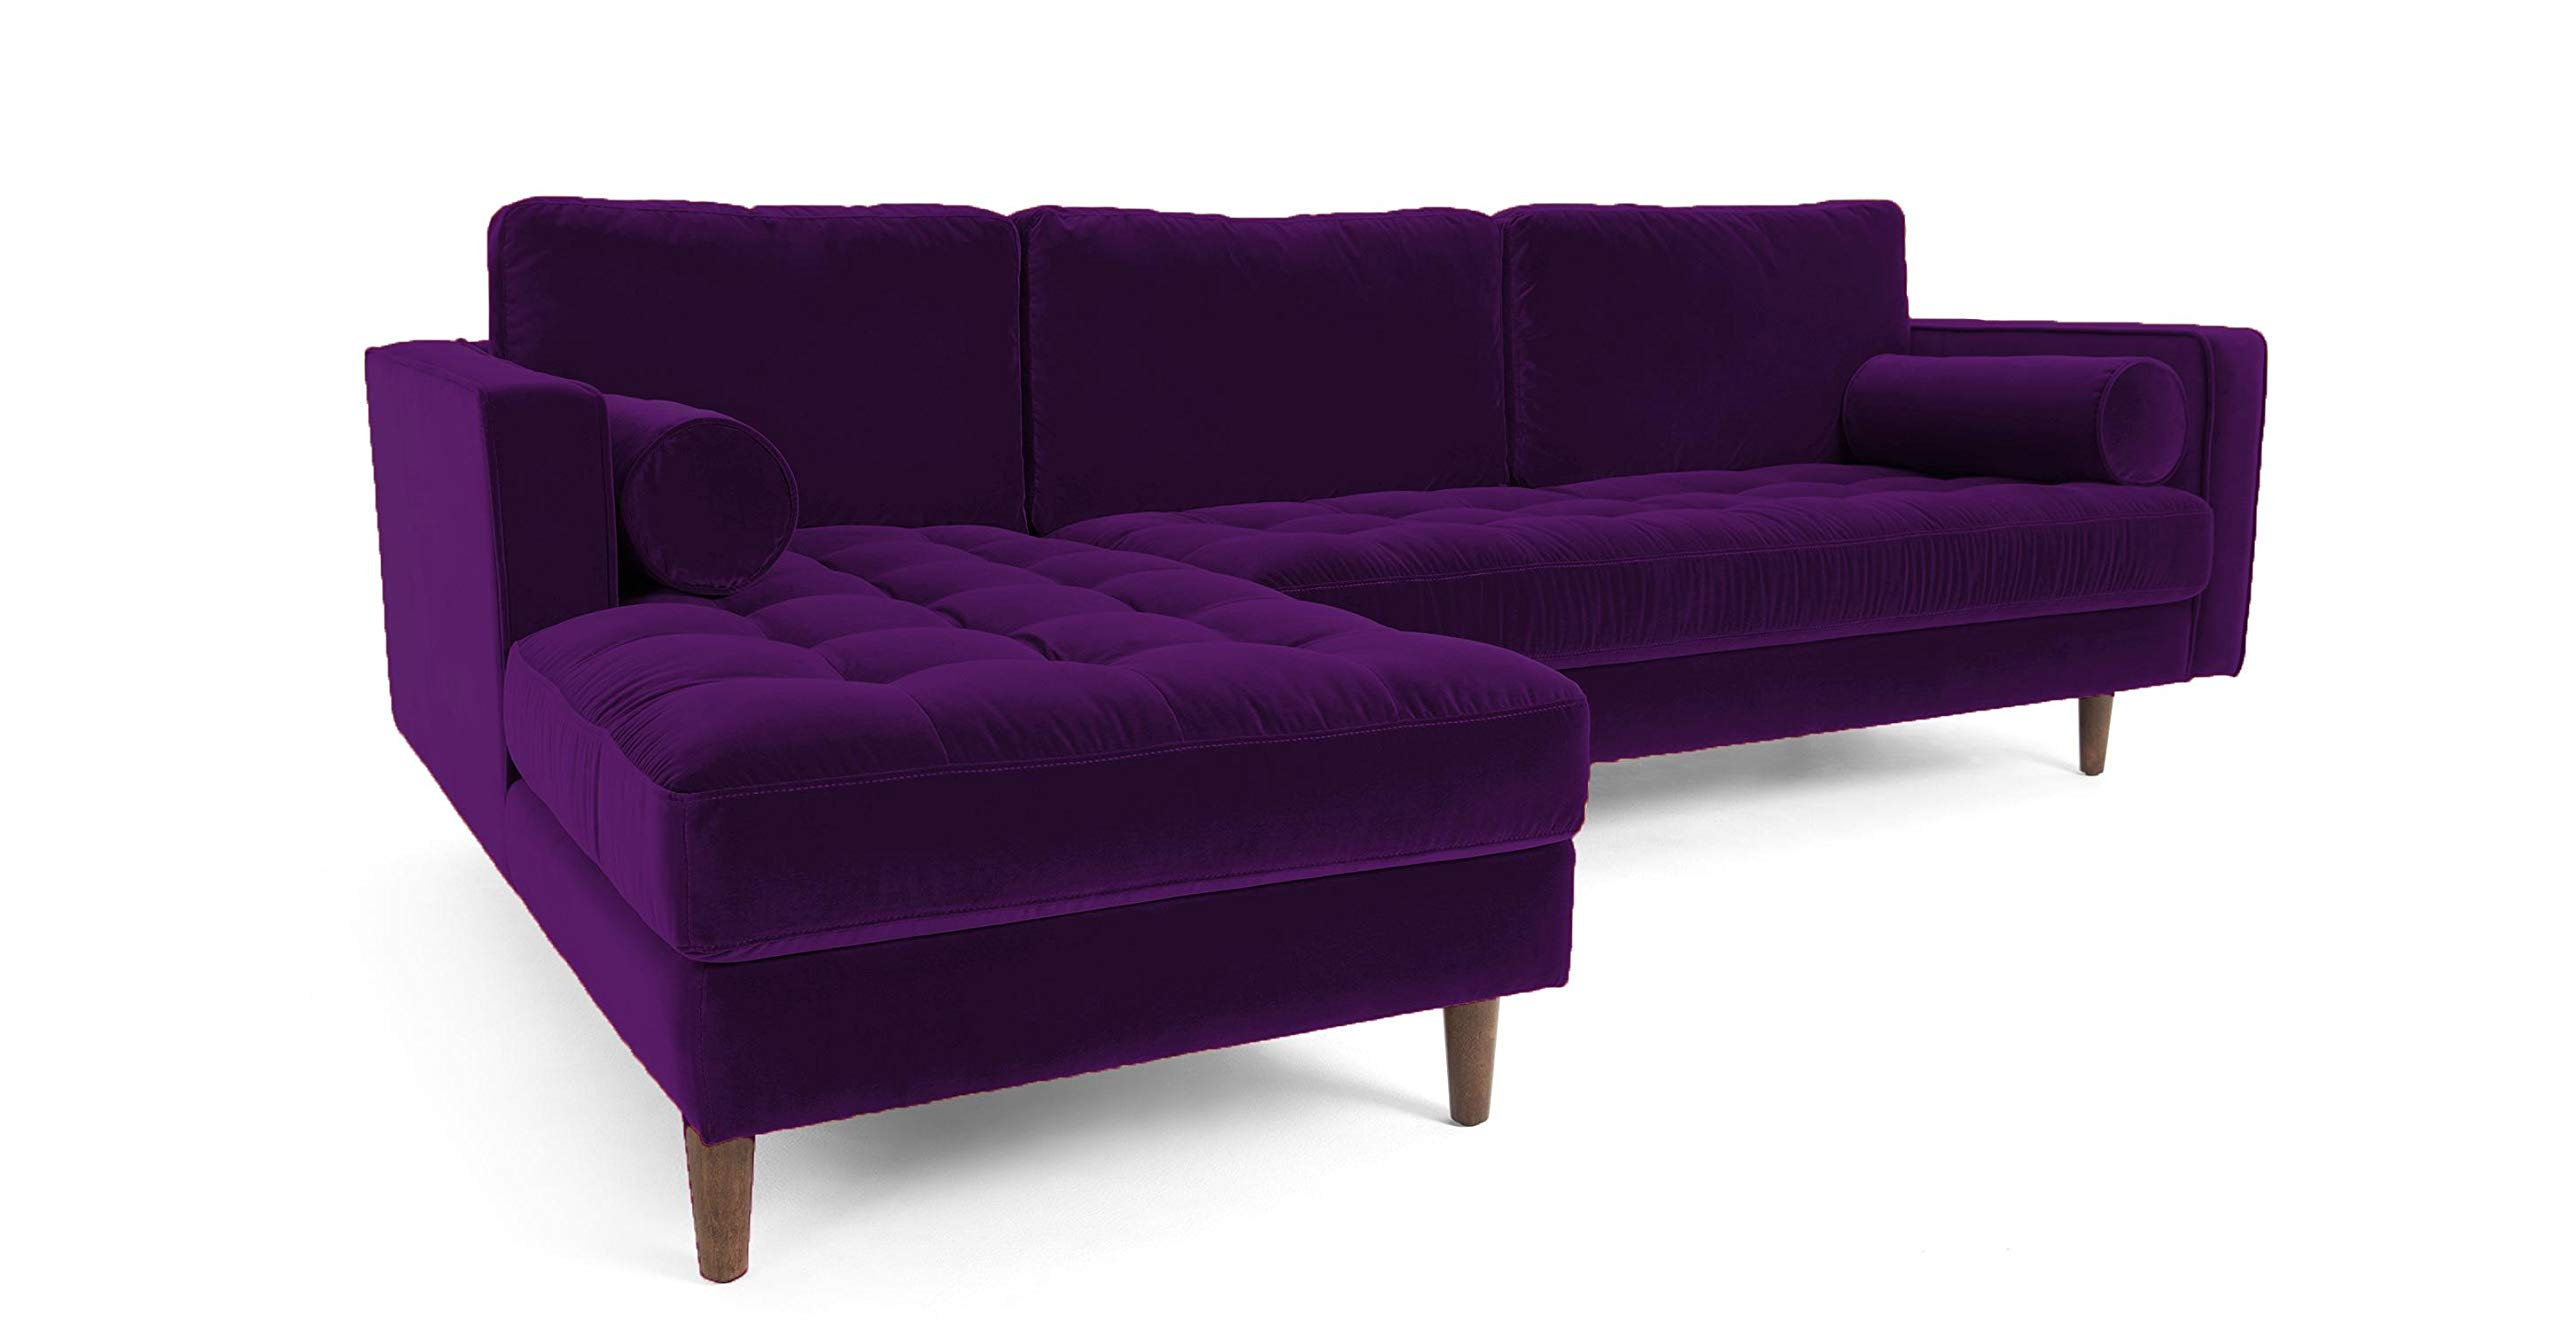 the latest 4002c c4e0f Galaxy Design Velvet Series L Shape Sofa attractive Scott design Velvet  Fabric, Pure Wood base Purple Color GDFSCT-564-43